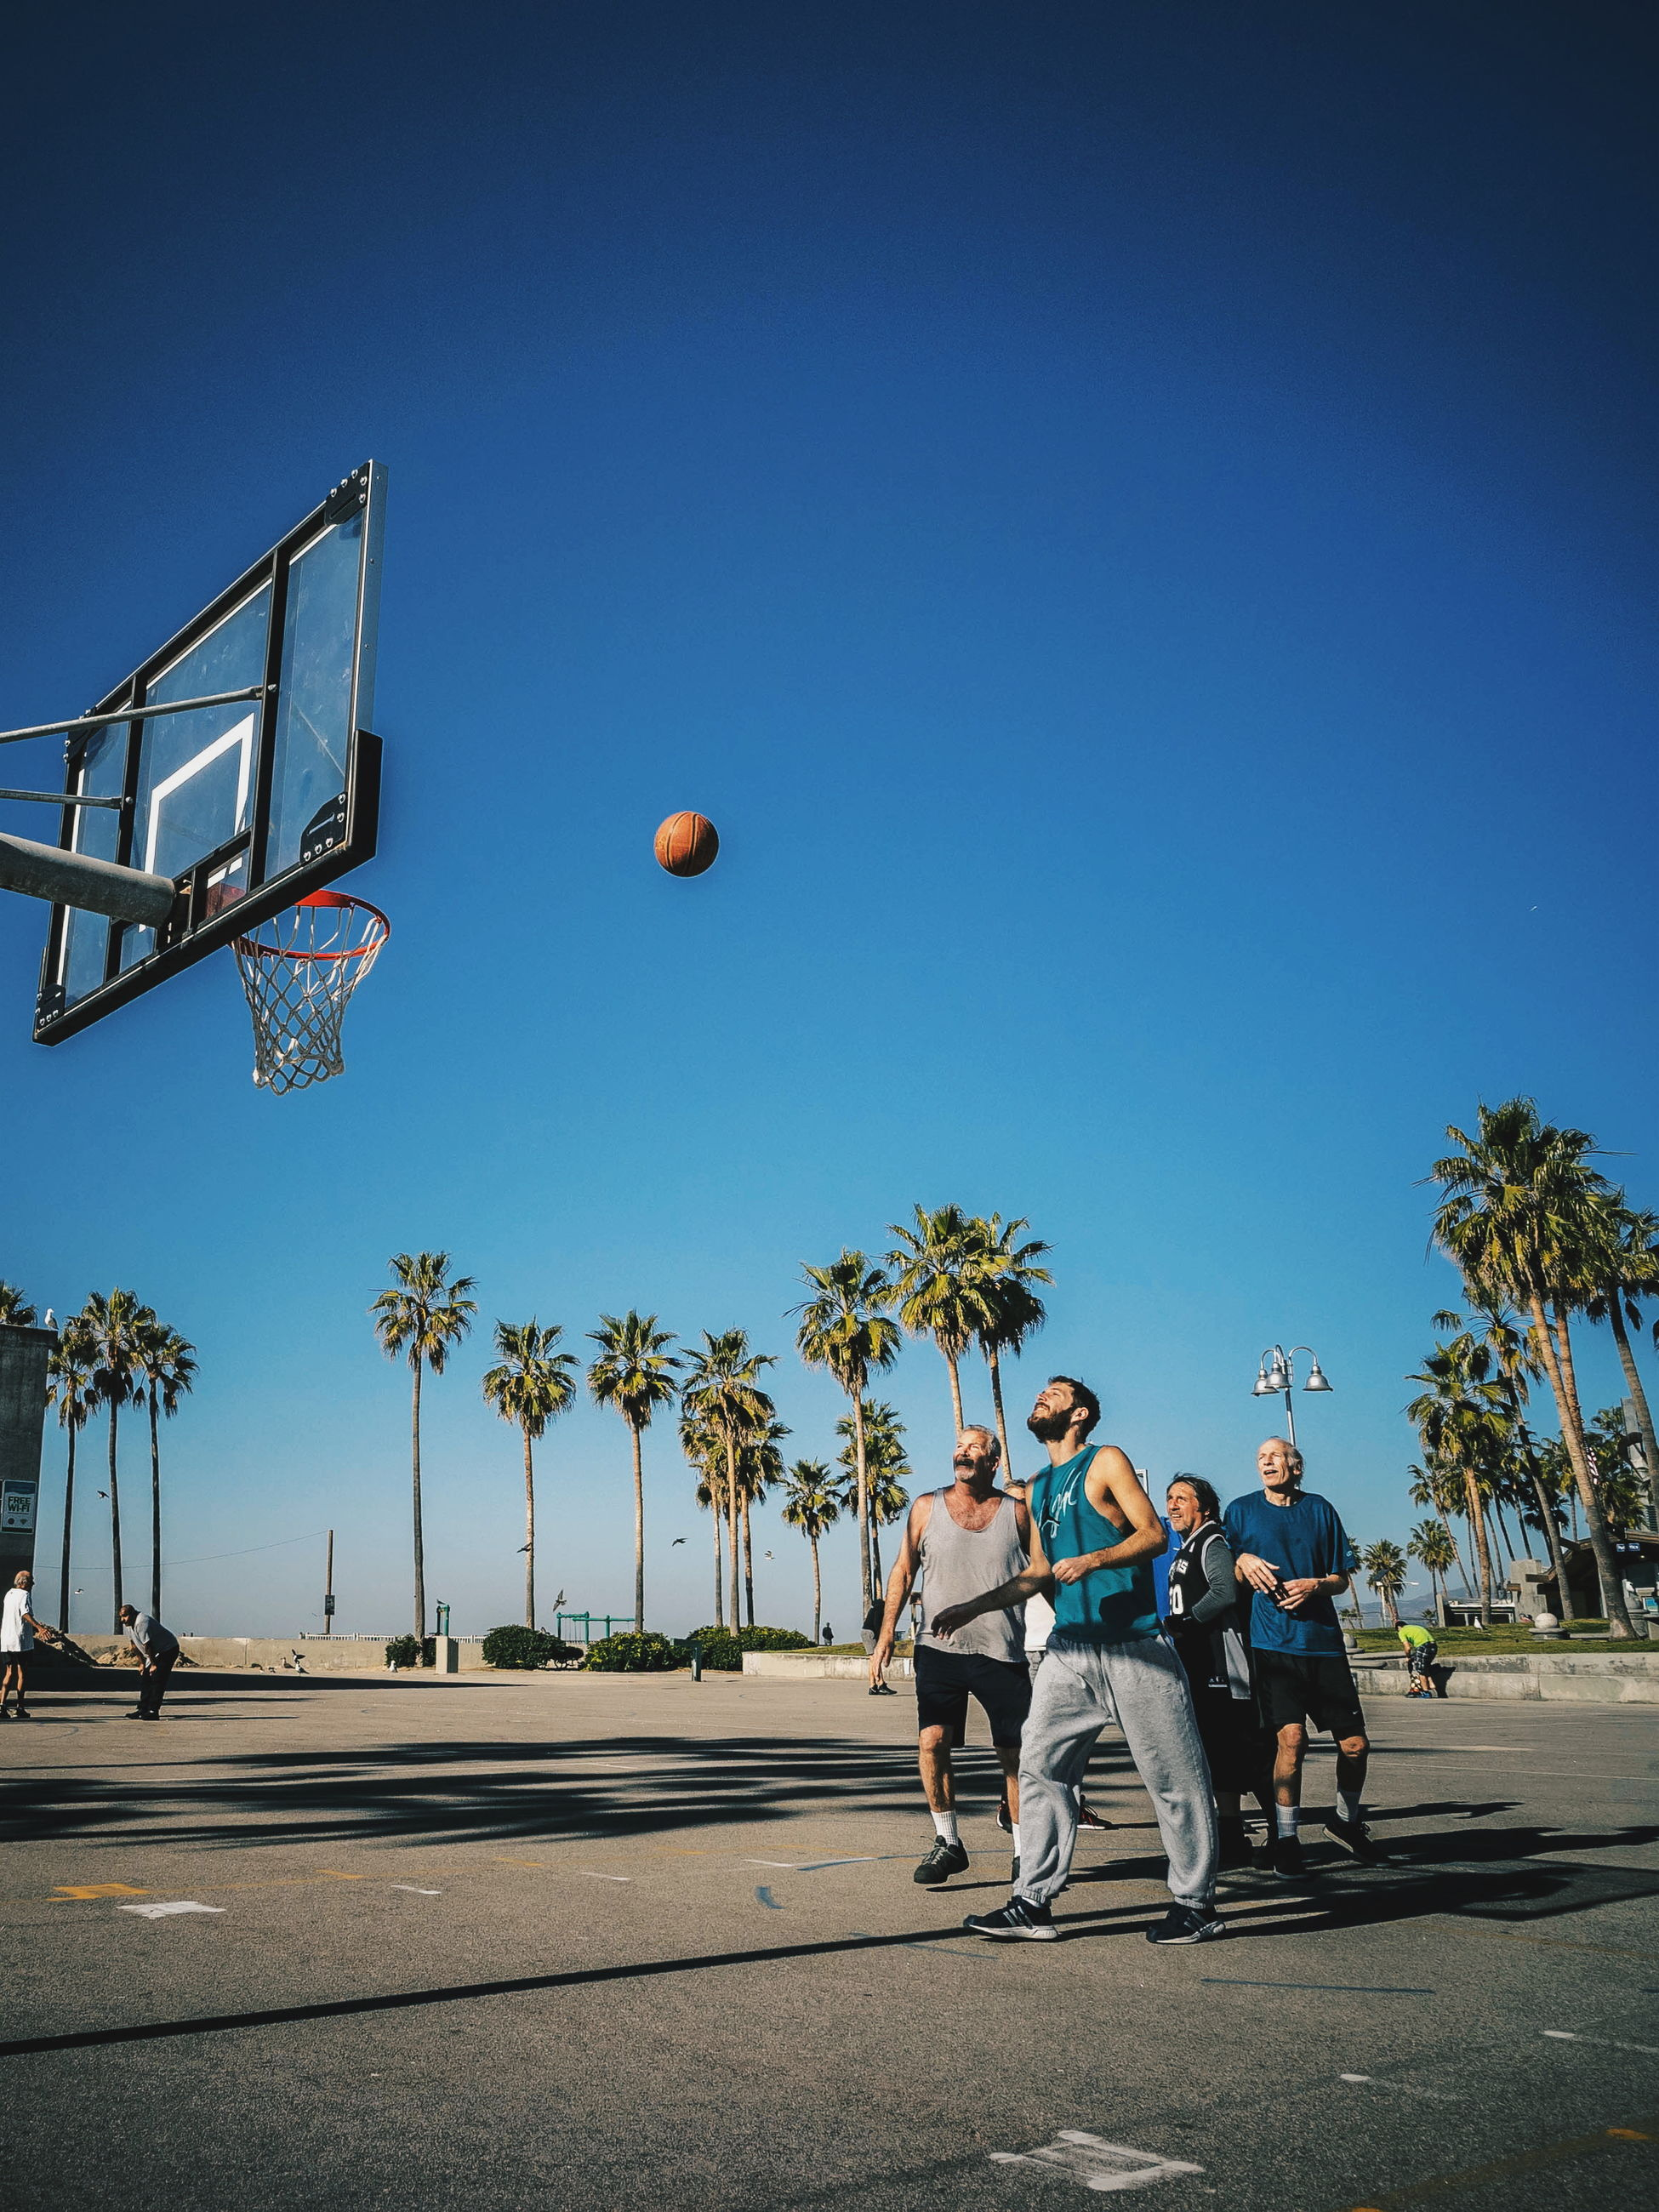 basketball - sport, basketball hoop, full length, motion, ball, men, leisure activity, day, togetherness, blue, outdoors, lifestyles, playing, activity, jumping, mid-air, clear sky, real people, two people, sport, court, young adult, sky, adult, people